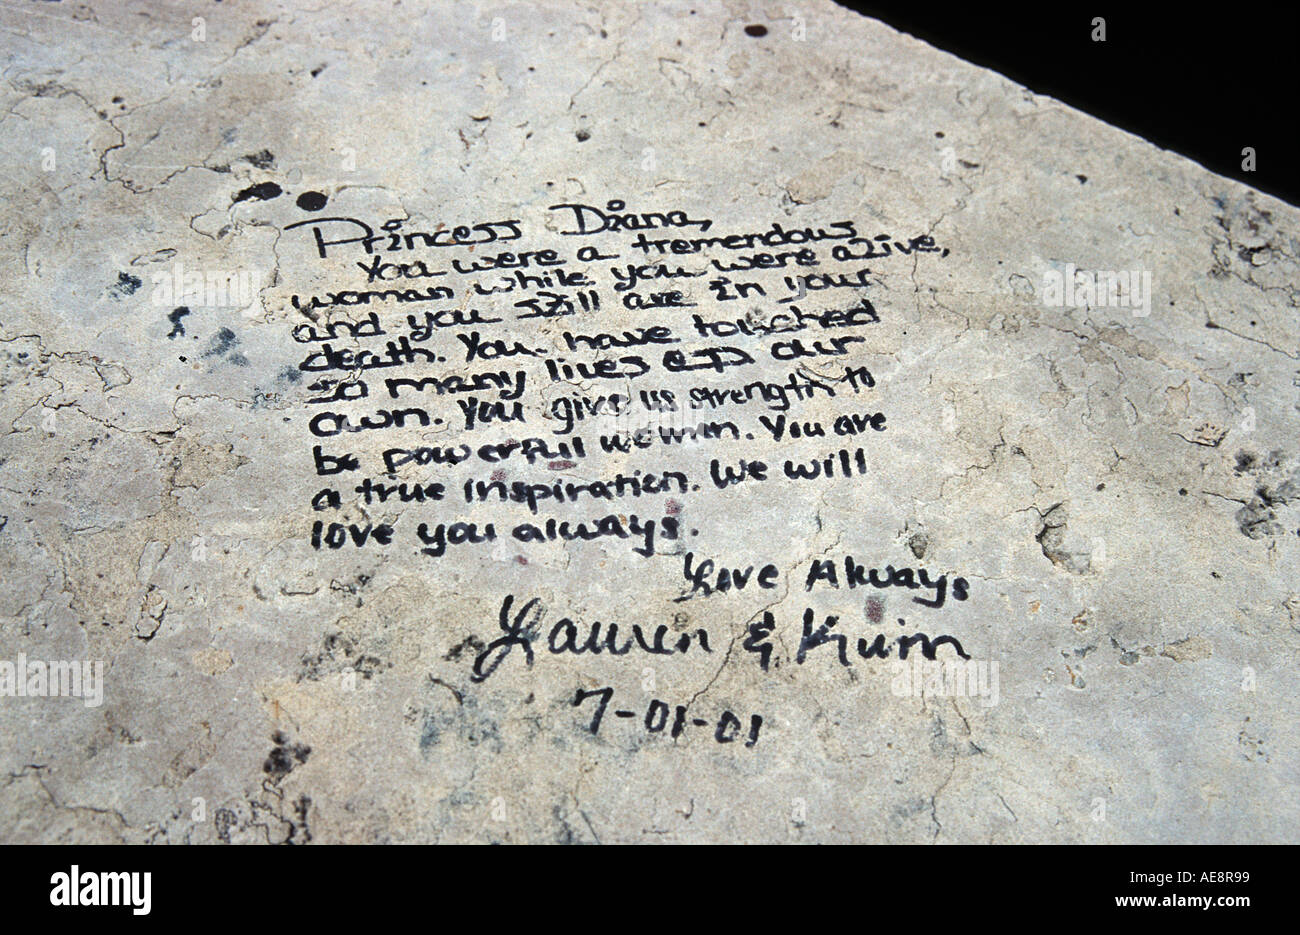 Notes left in memory of Lady Diana Princess of Wales at site of her death in Paris in August 1997 Place de l Alma Paris France - Stock Image